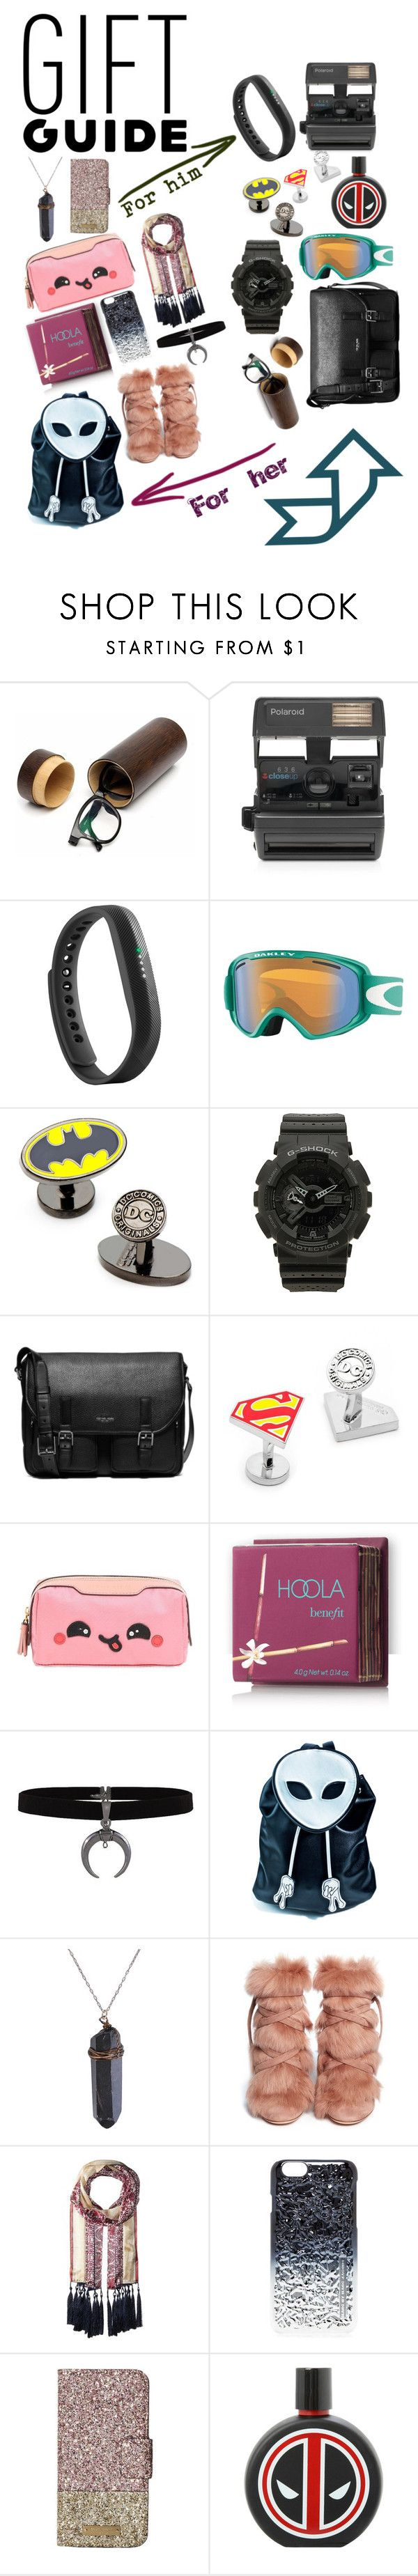 """""""Gifts for her/for him"""" by olesyaanna ❤ liked on Polyvore featuring Impossible, Fitbit, Oakley, Cufflinks, Inc., G-Shock, Michael Kors, Anya Hindmarch, Hoola, Current Mood and Gianvito Rossi"""